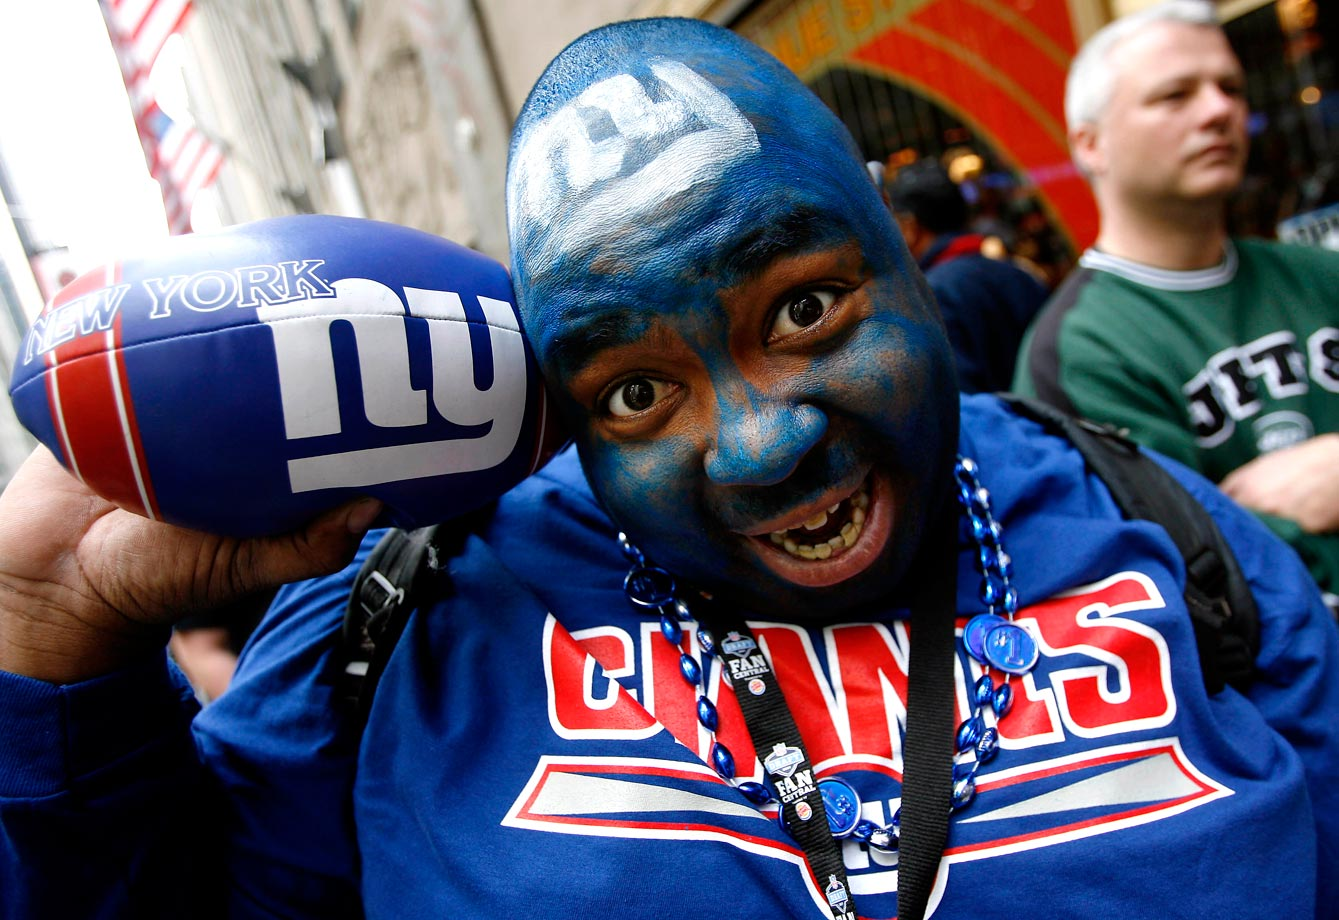 New York Giants fan in 2007.